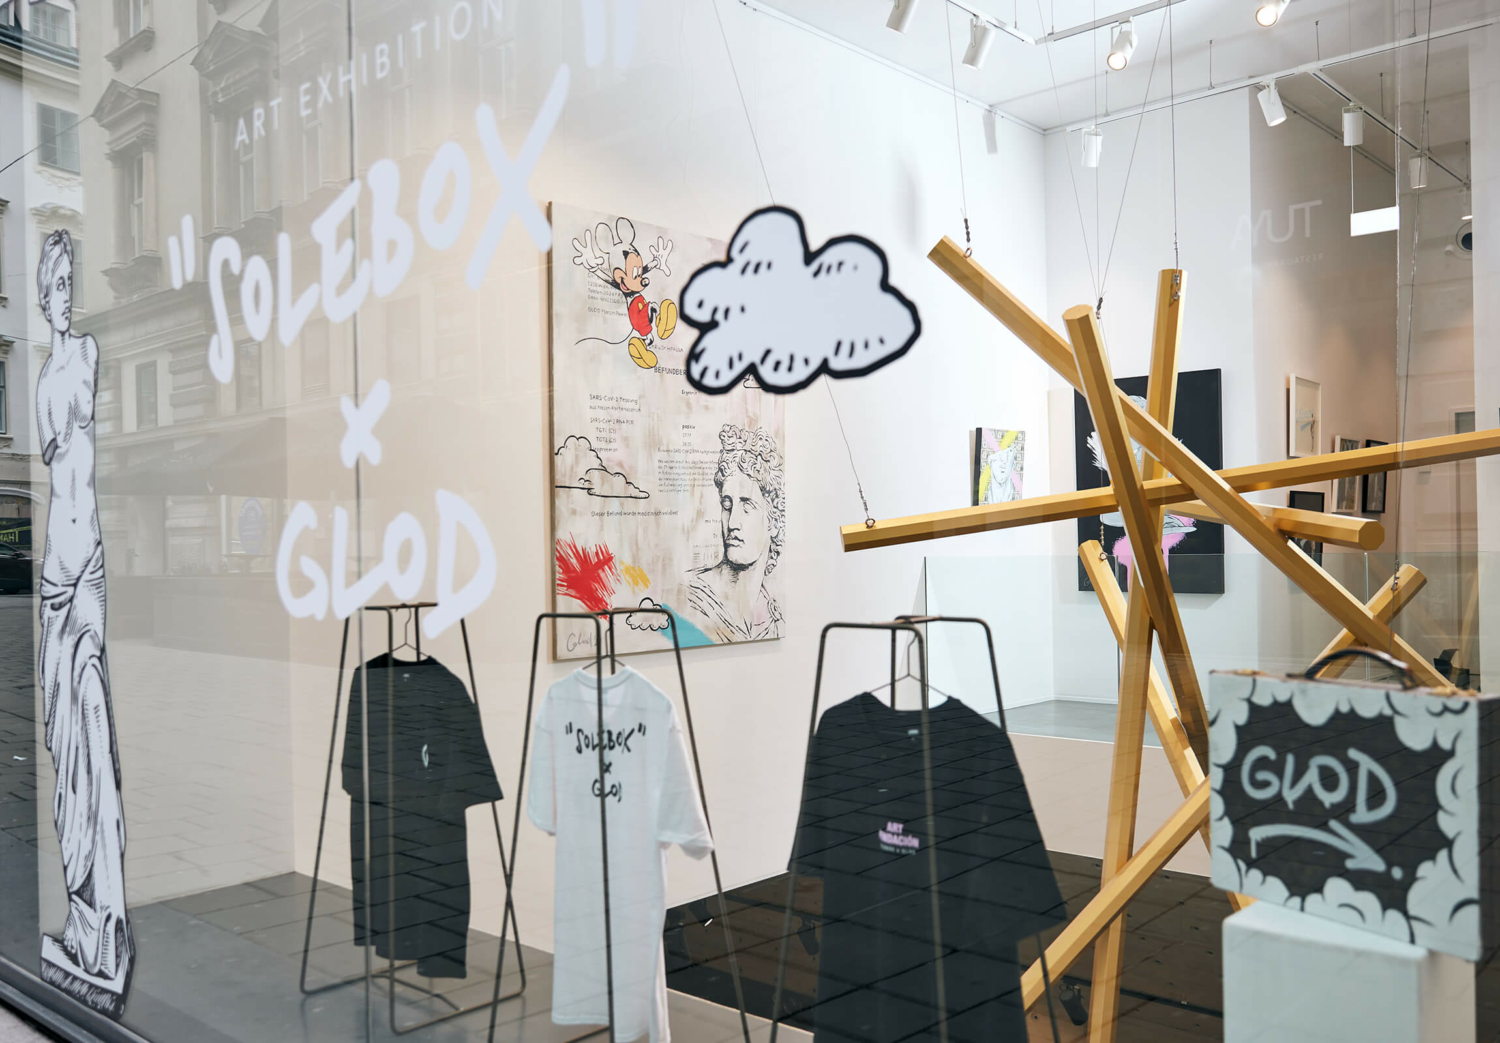 Glod Art - Exhibition and Cooperation with Solebox Store Art Space in Vienna. Store Window with Artworks and T-Shirts by Glod.